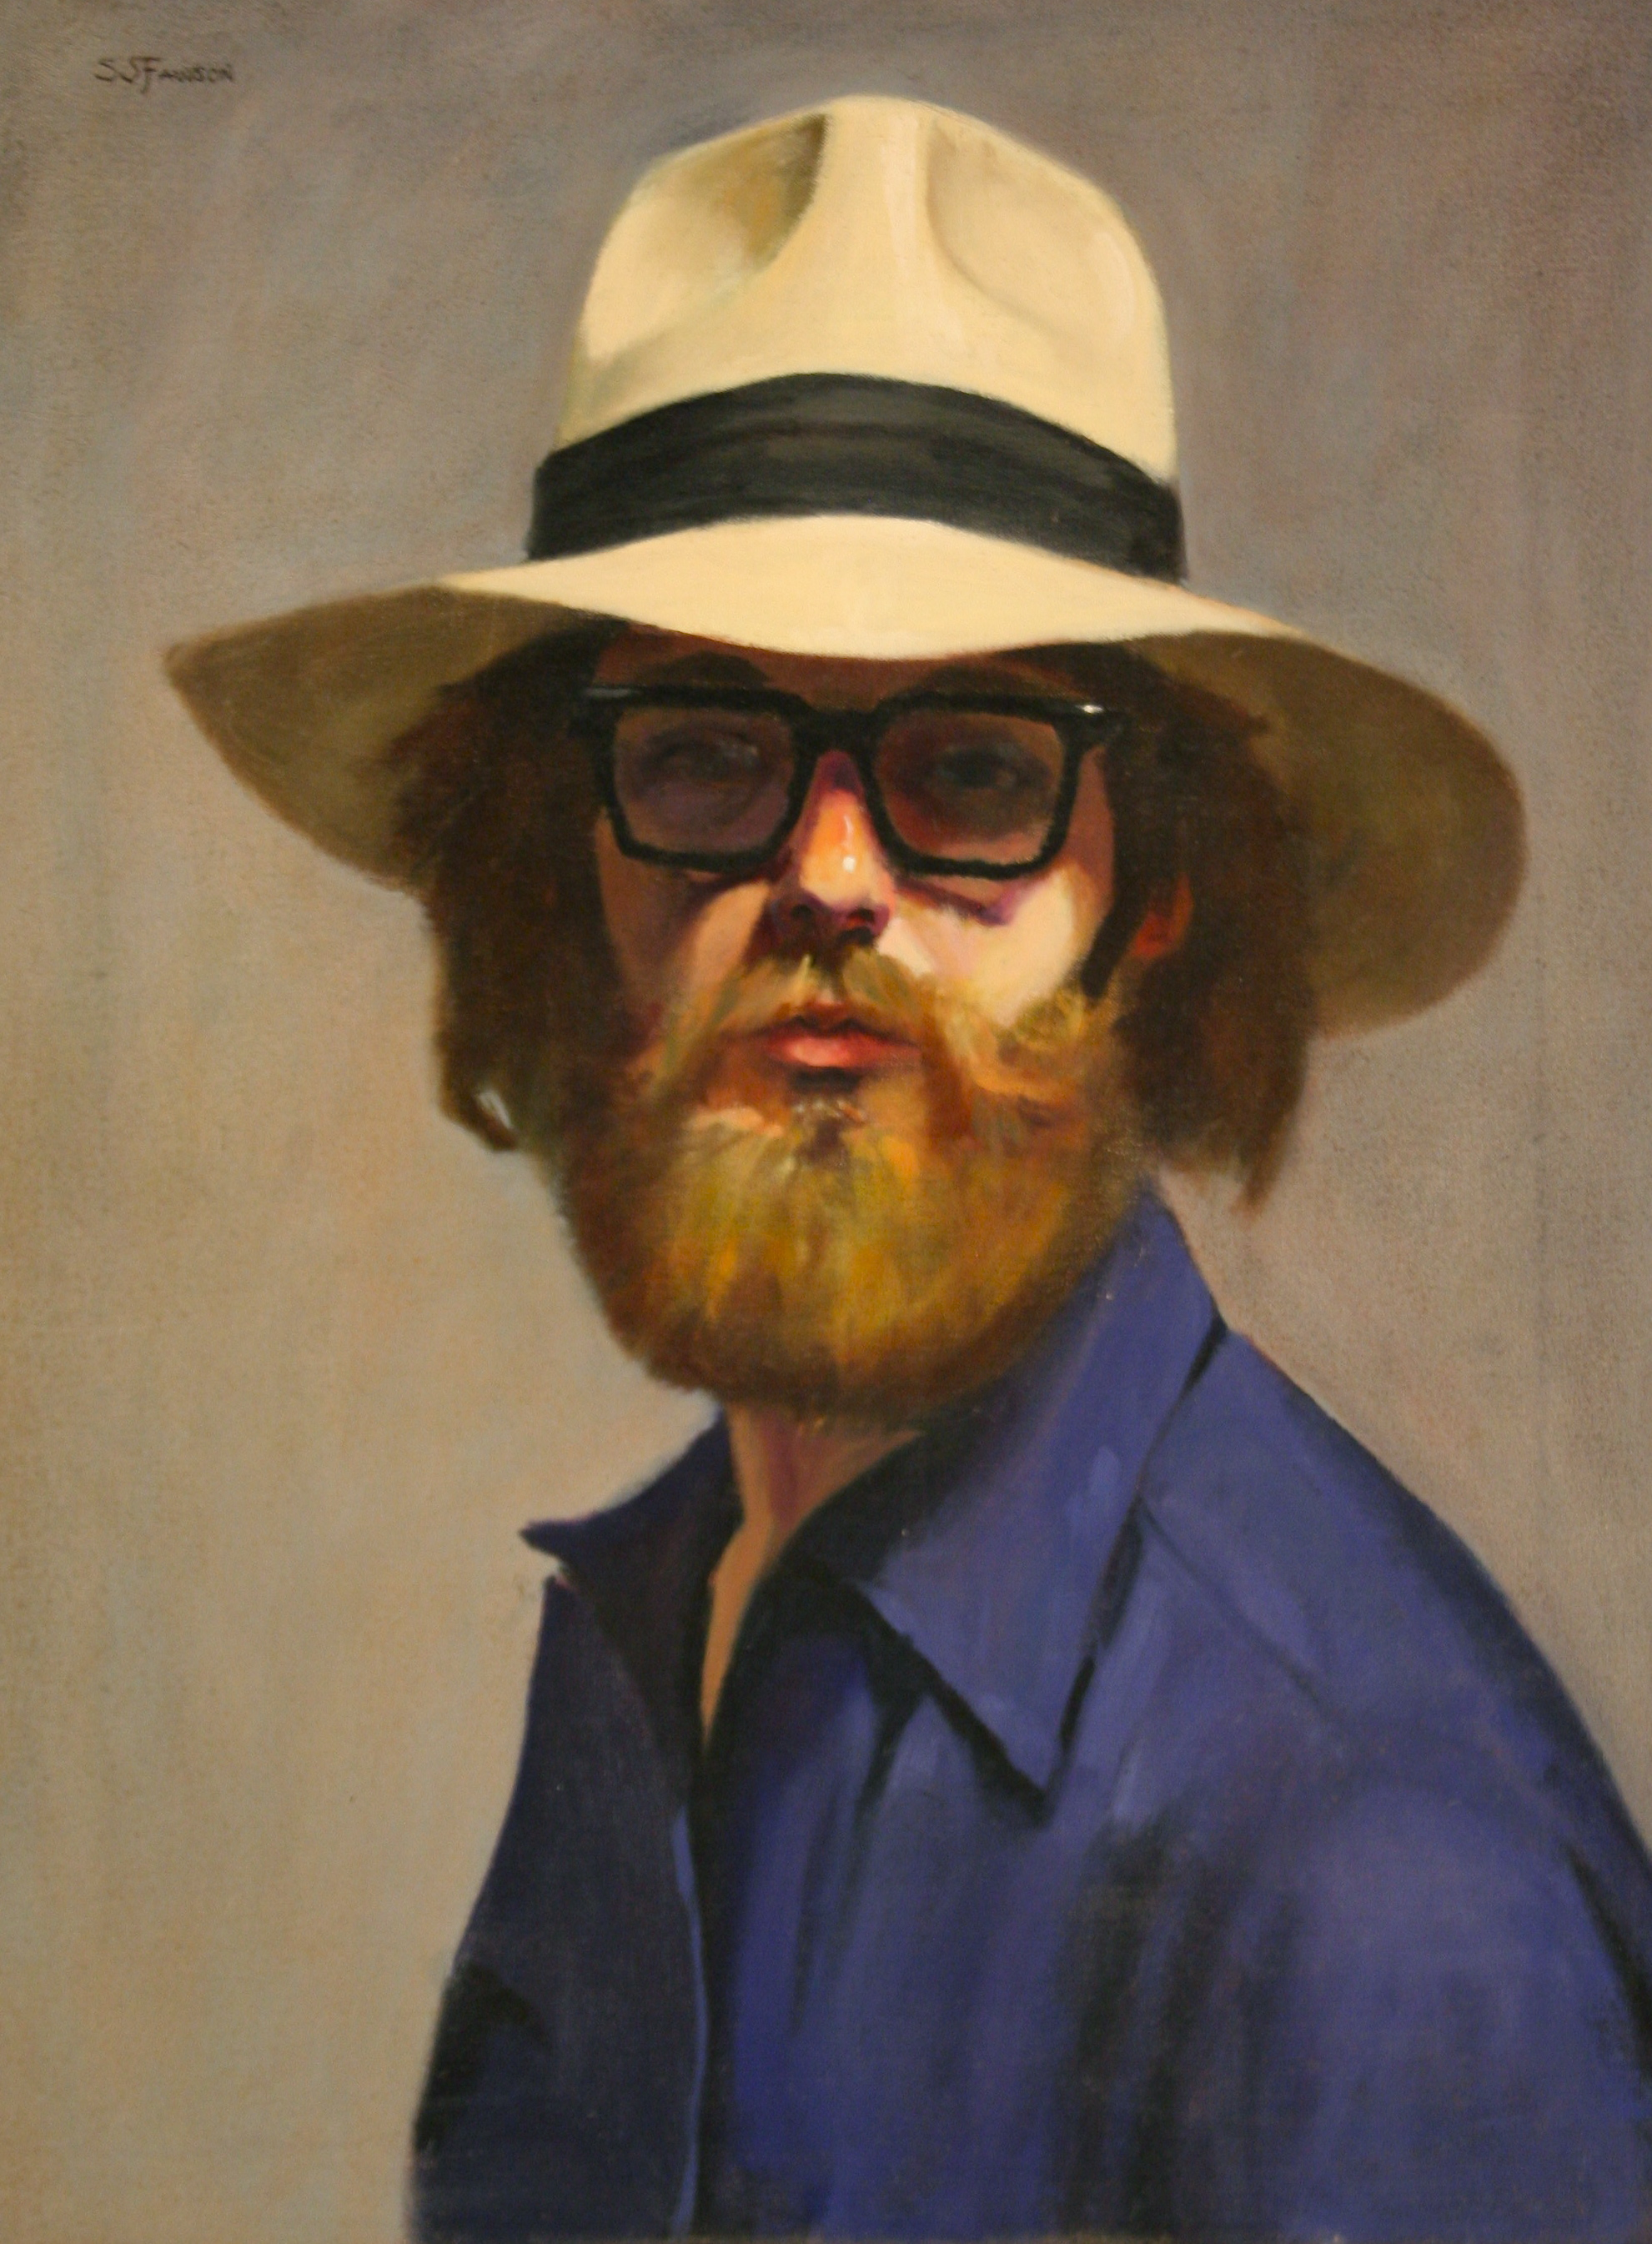 Steven Fawson self portrait